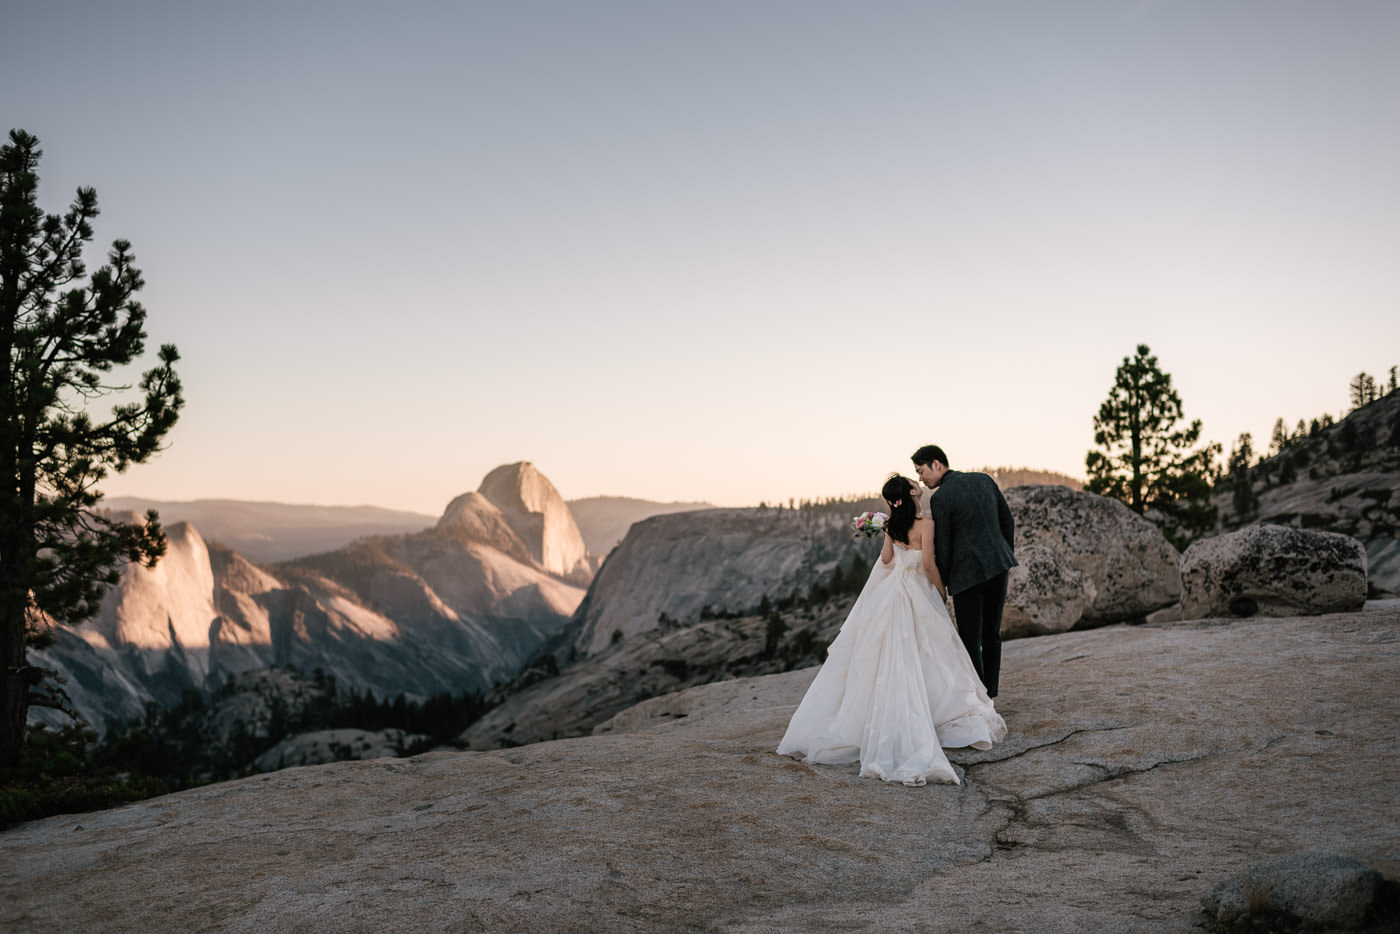 olmsted-point-elopement-yosemite-13.jpg